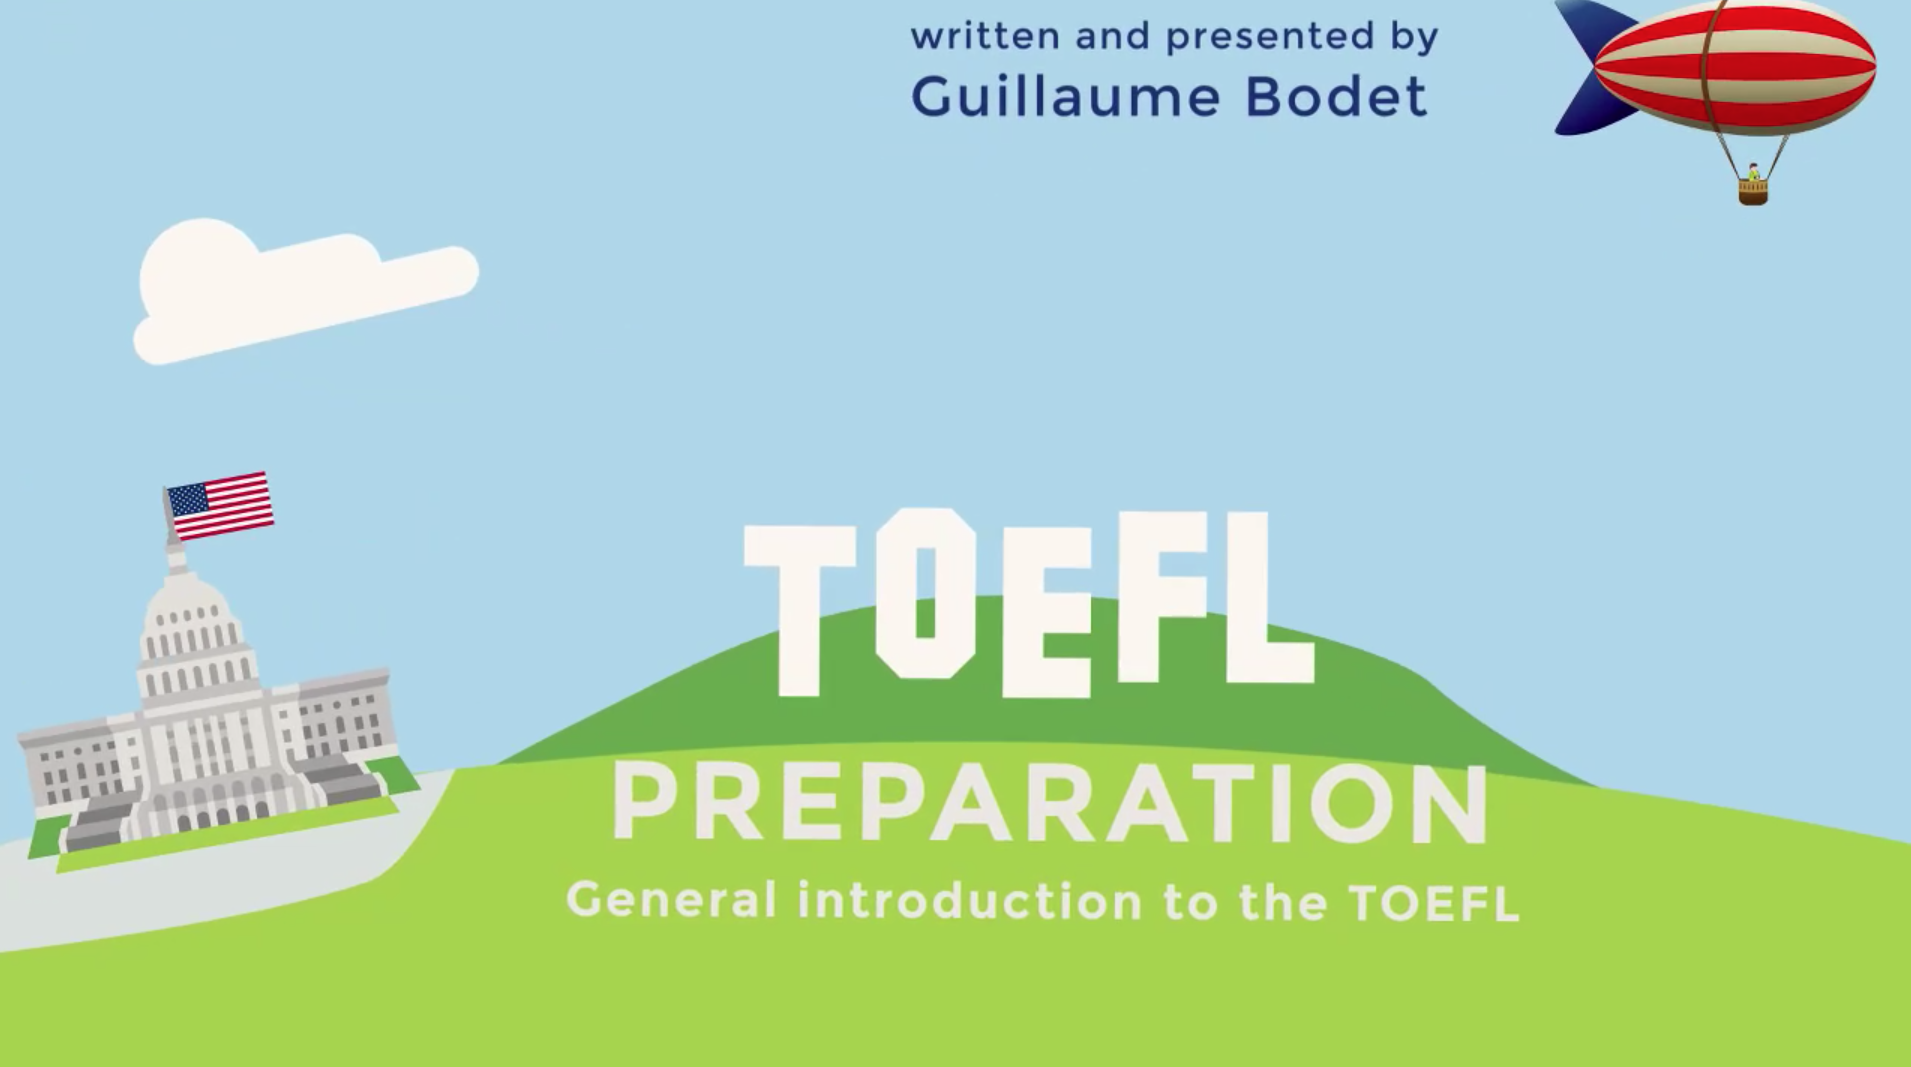 General introduction to the TOEFL